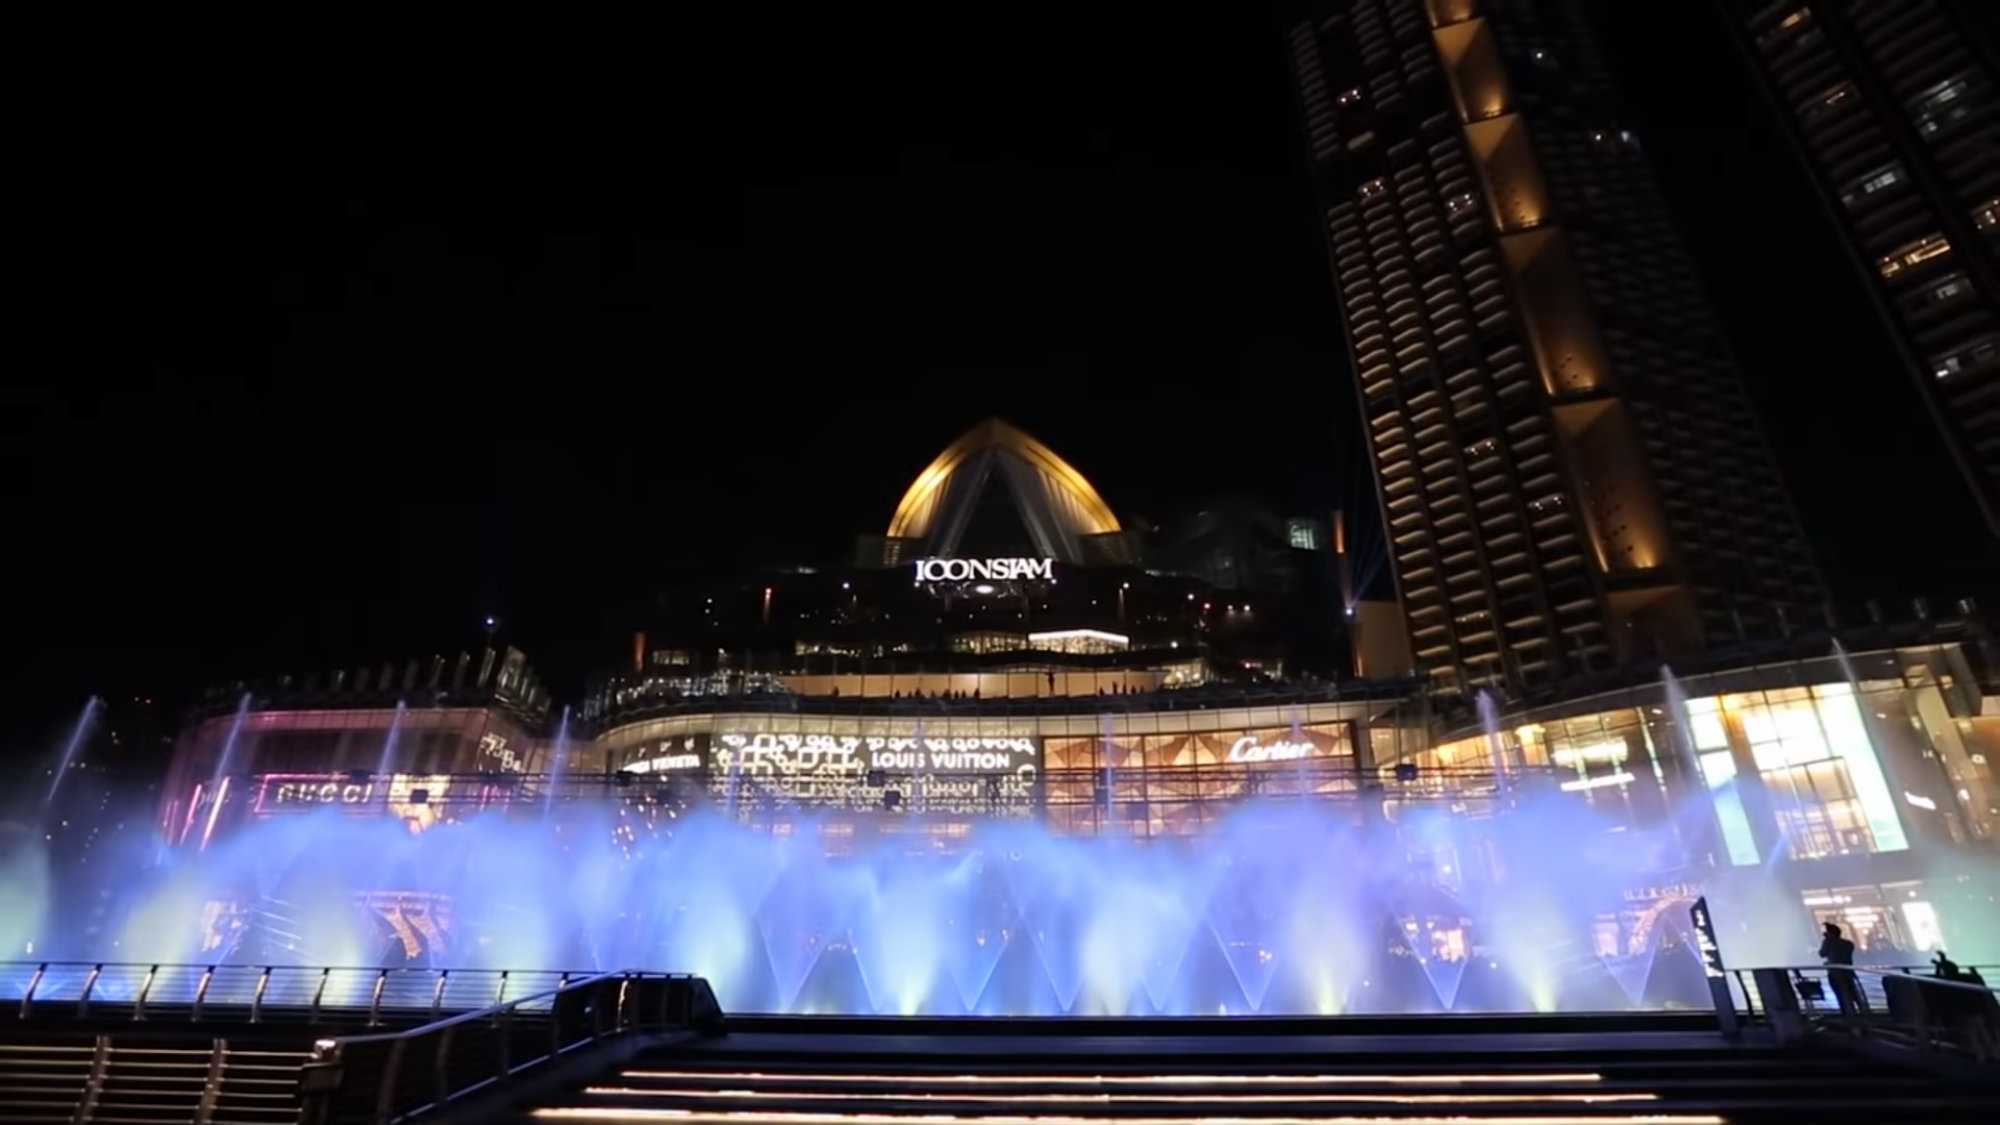 Iconic Multimedia Water Features Inauguran Fuente